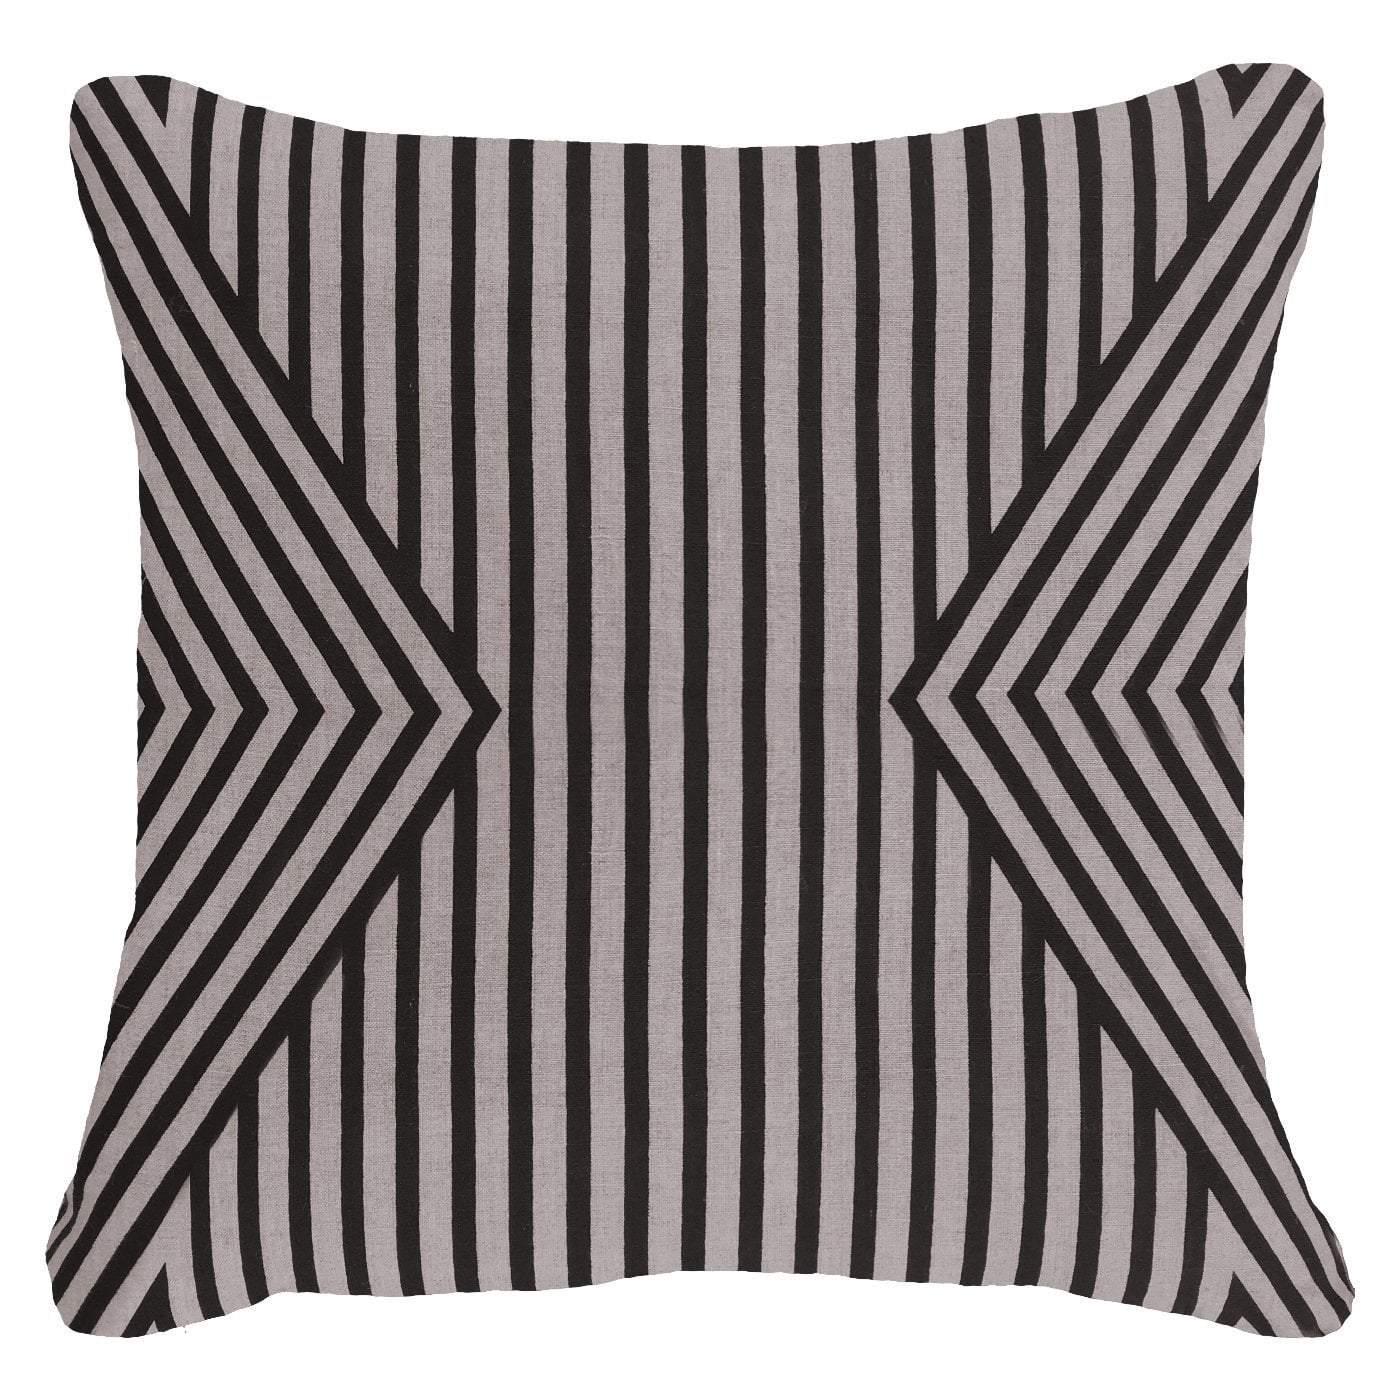 Bandhini Homewear Design Lounge Cushion Black / Exotic Dark / 22 x 22 Parasol Black Lounge Cushion 55 x 55 cm